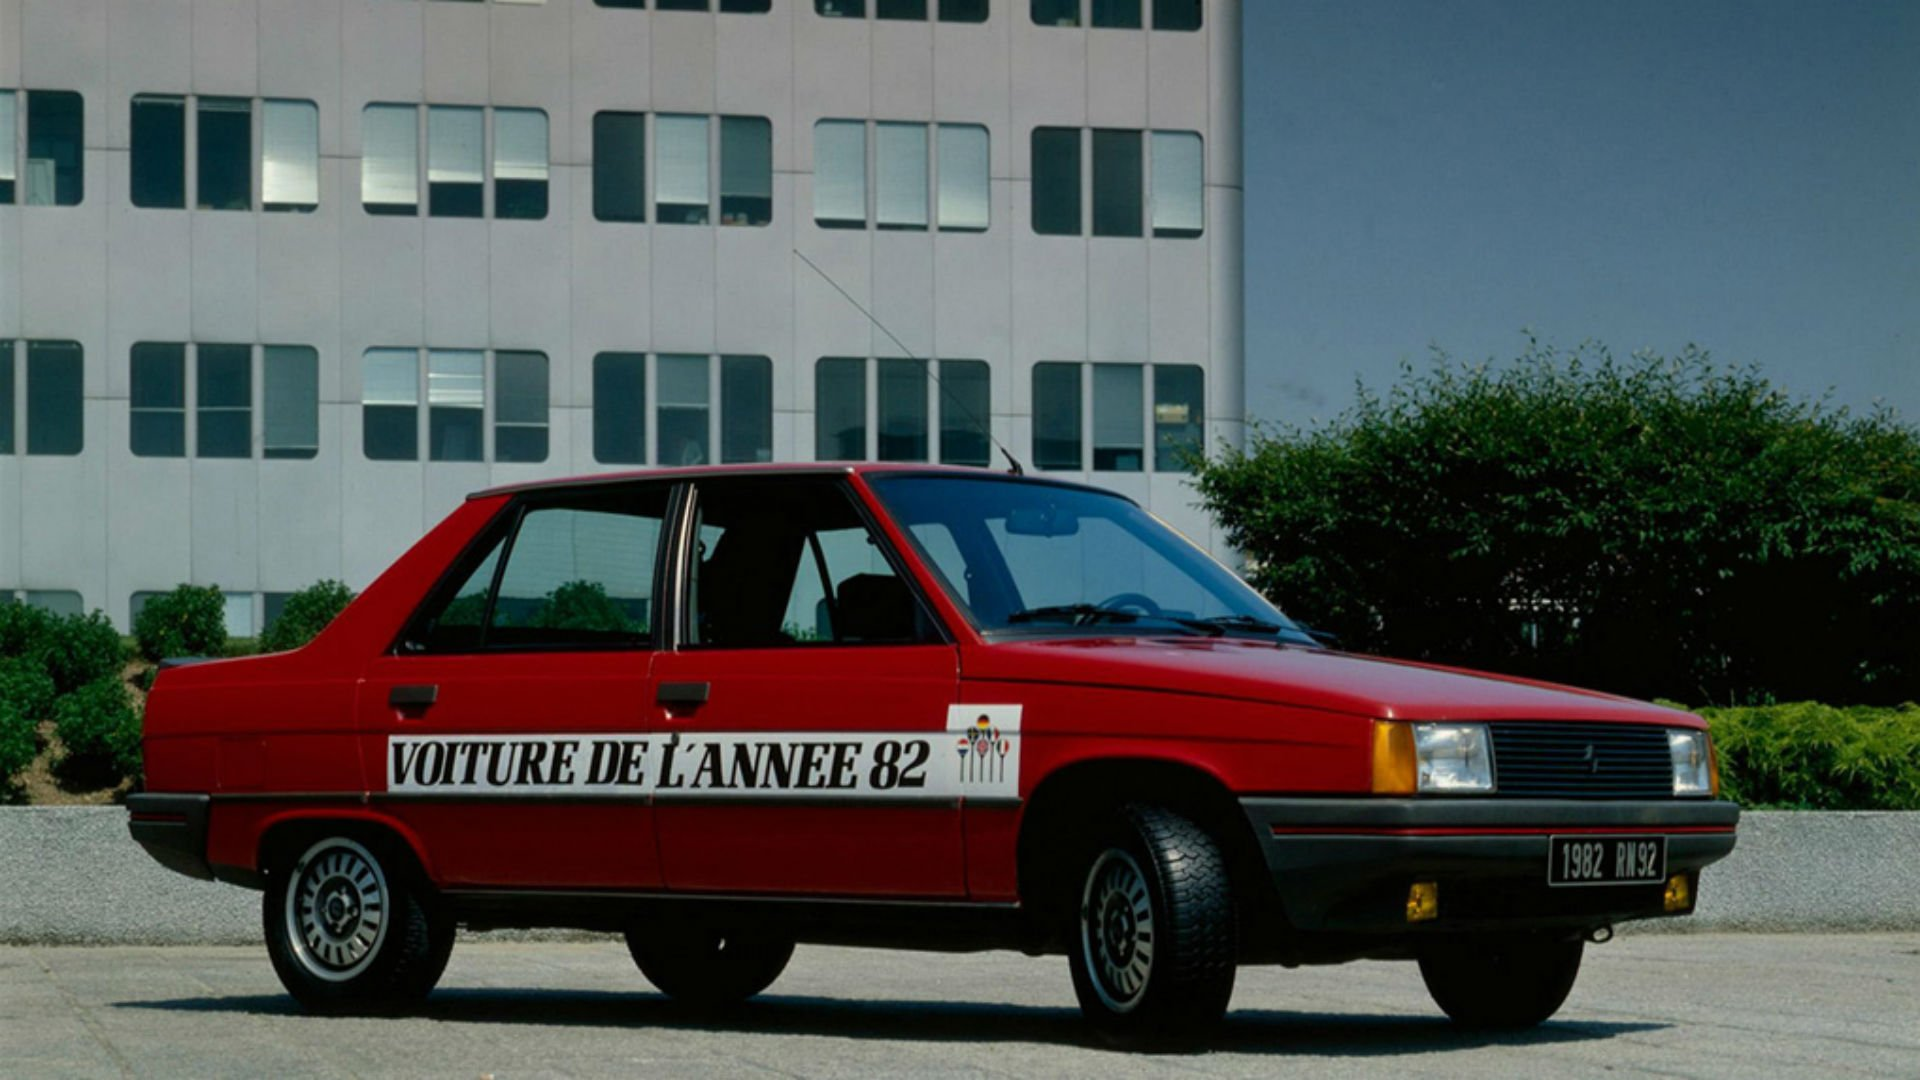 Renault 9 Car of the Year 1982